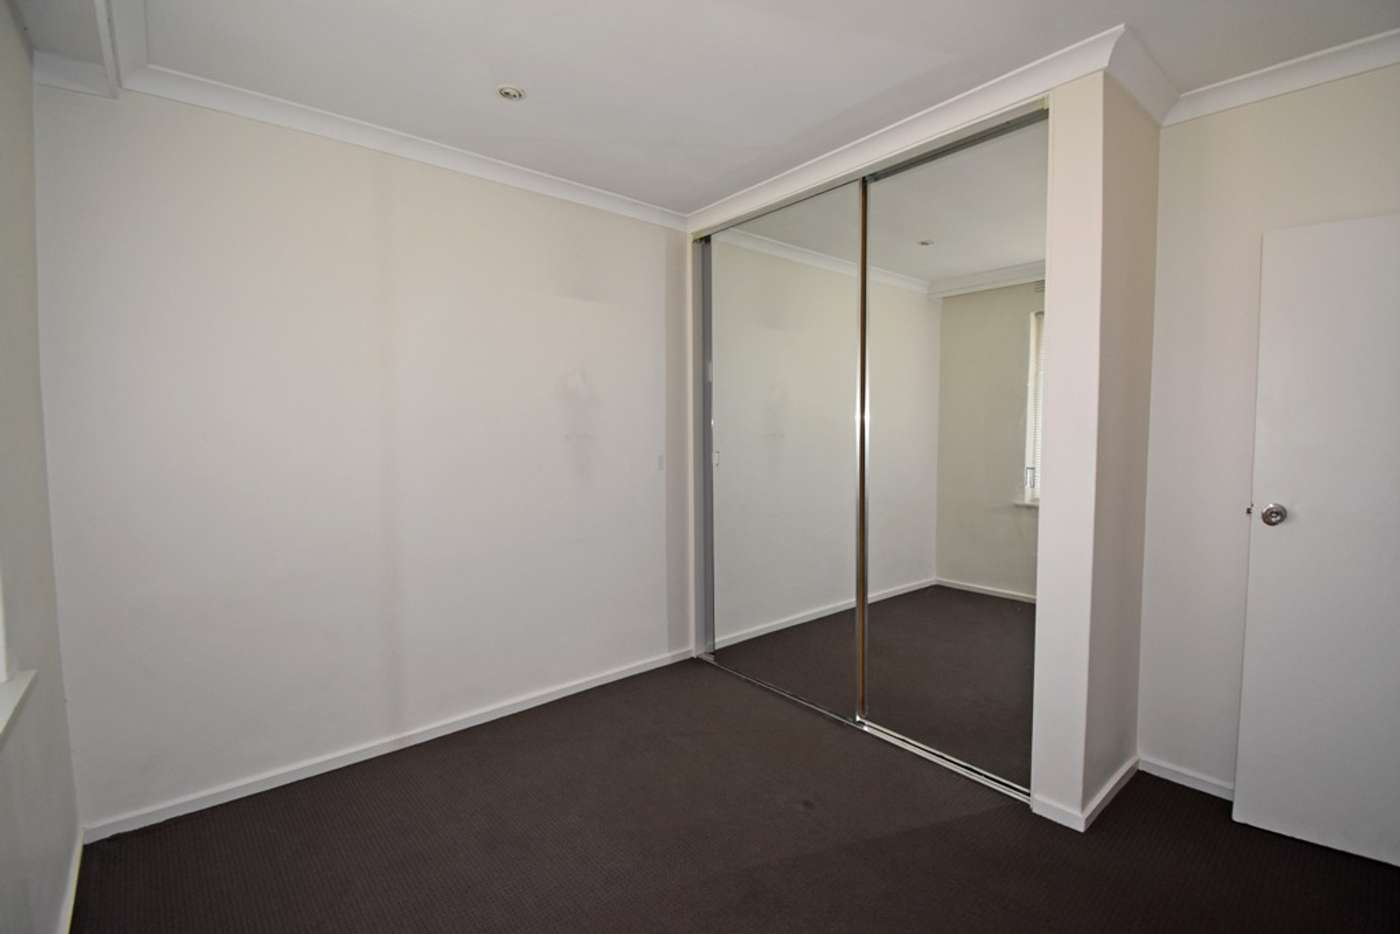 Sixth view of Homely apartment listing, 3/10 Kokaribb Road, Carnegie VIC 3163